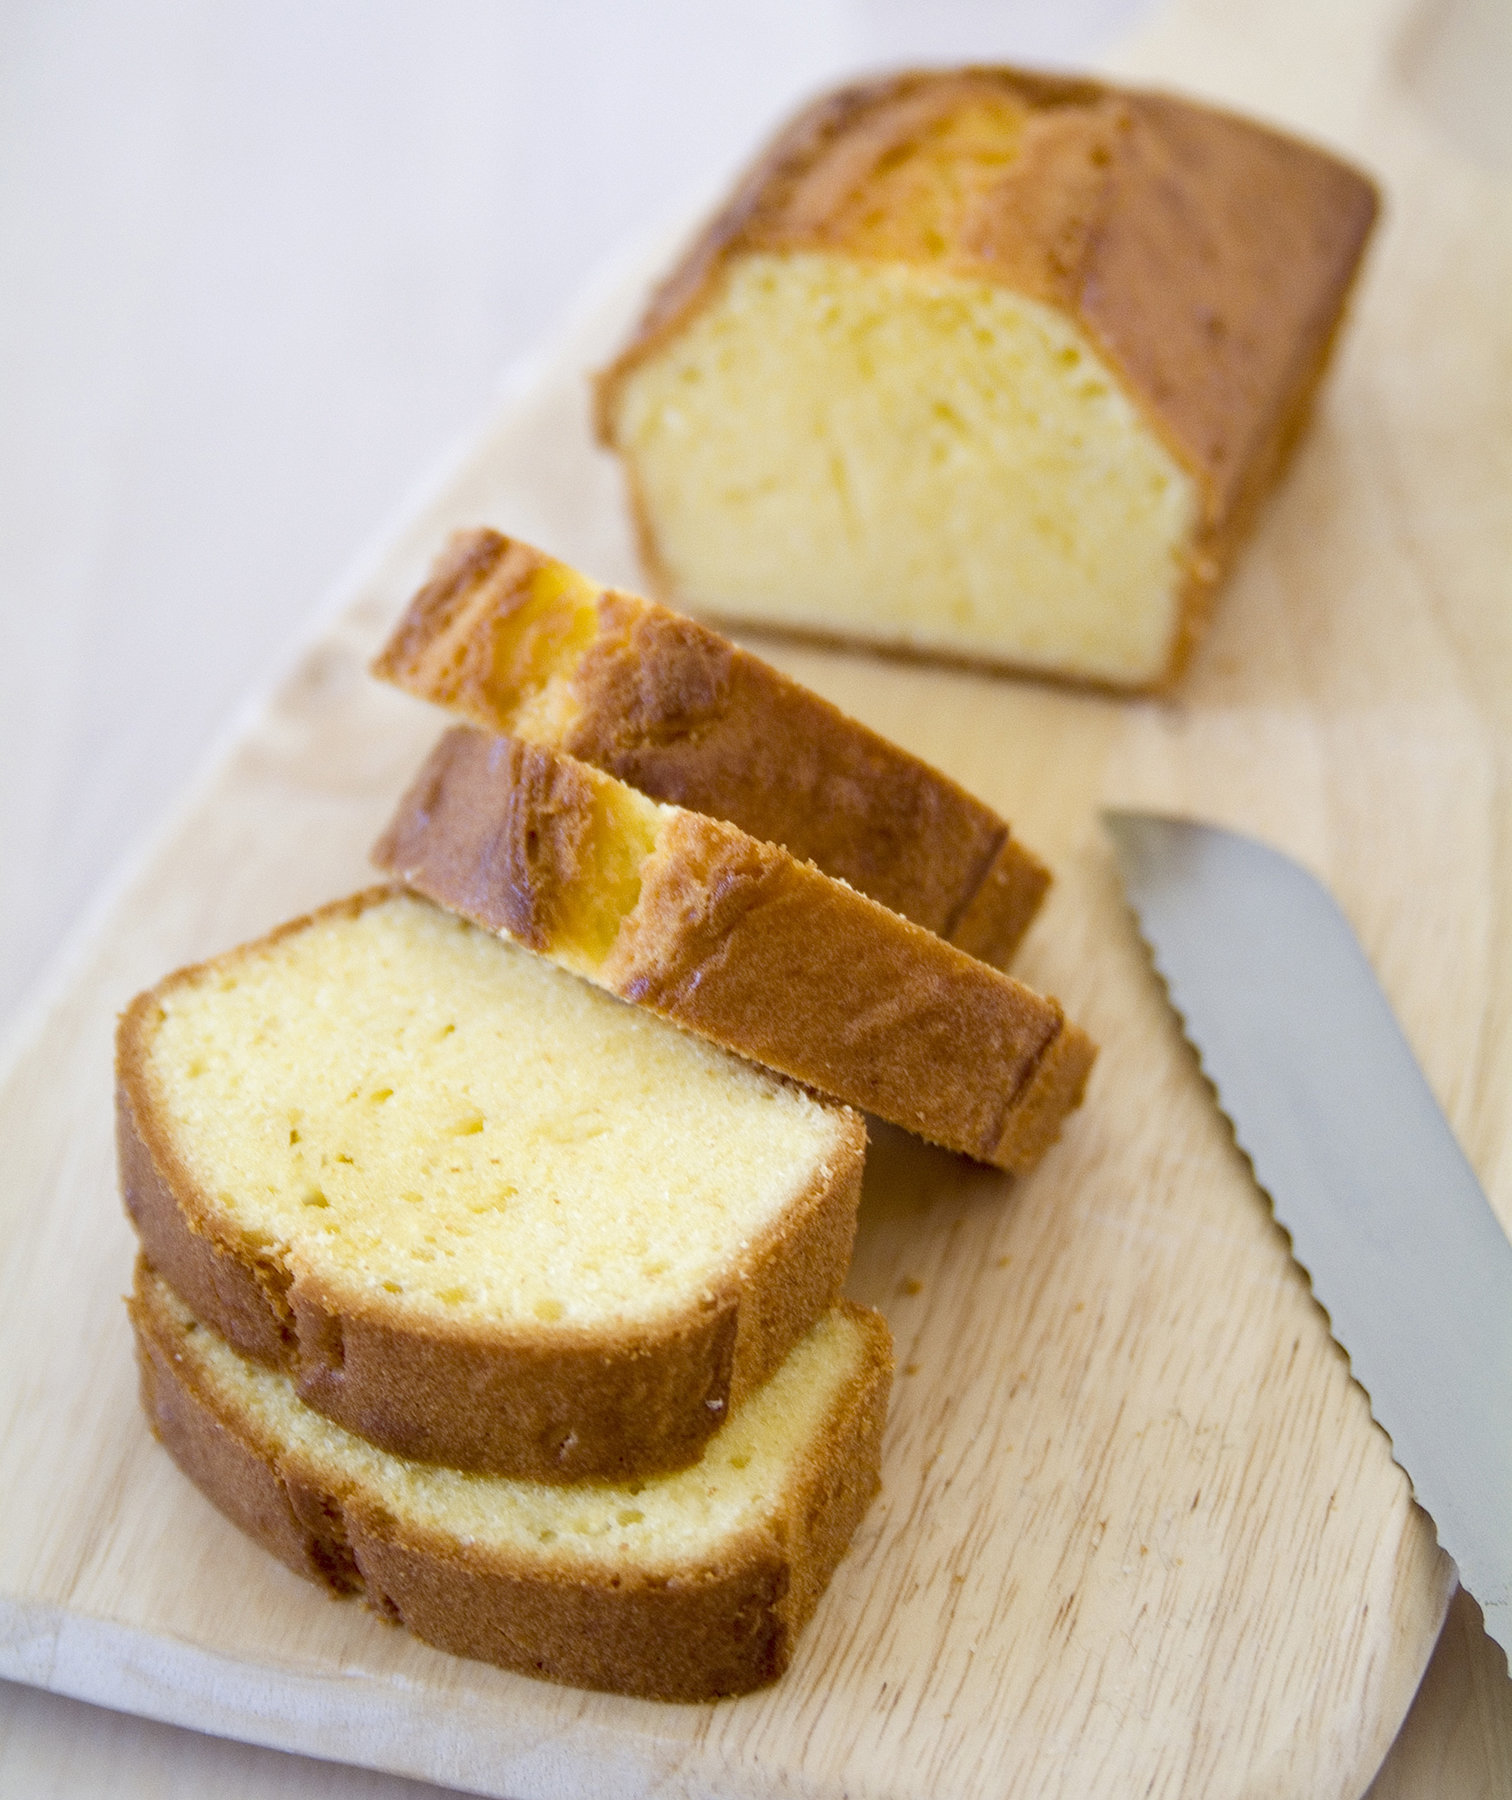 This No-Fuss Pound Cake Is the Easiest Cake That's Not From a Box